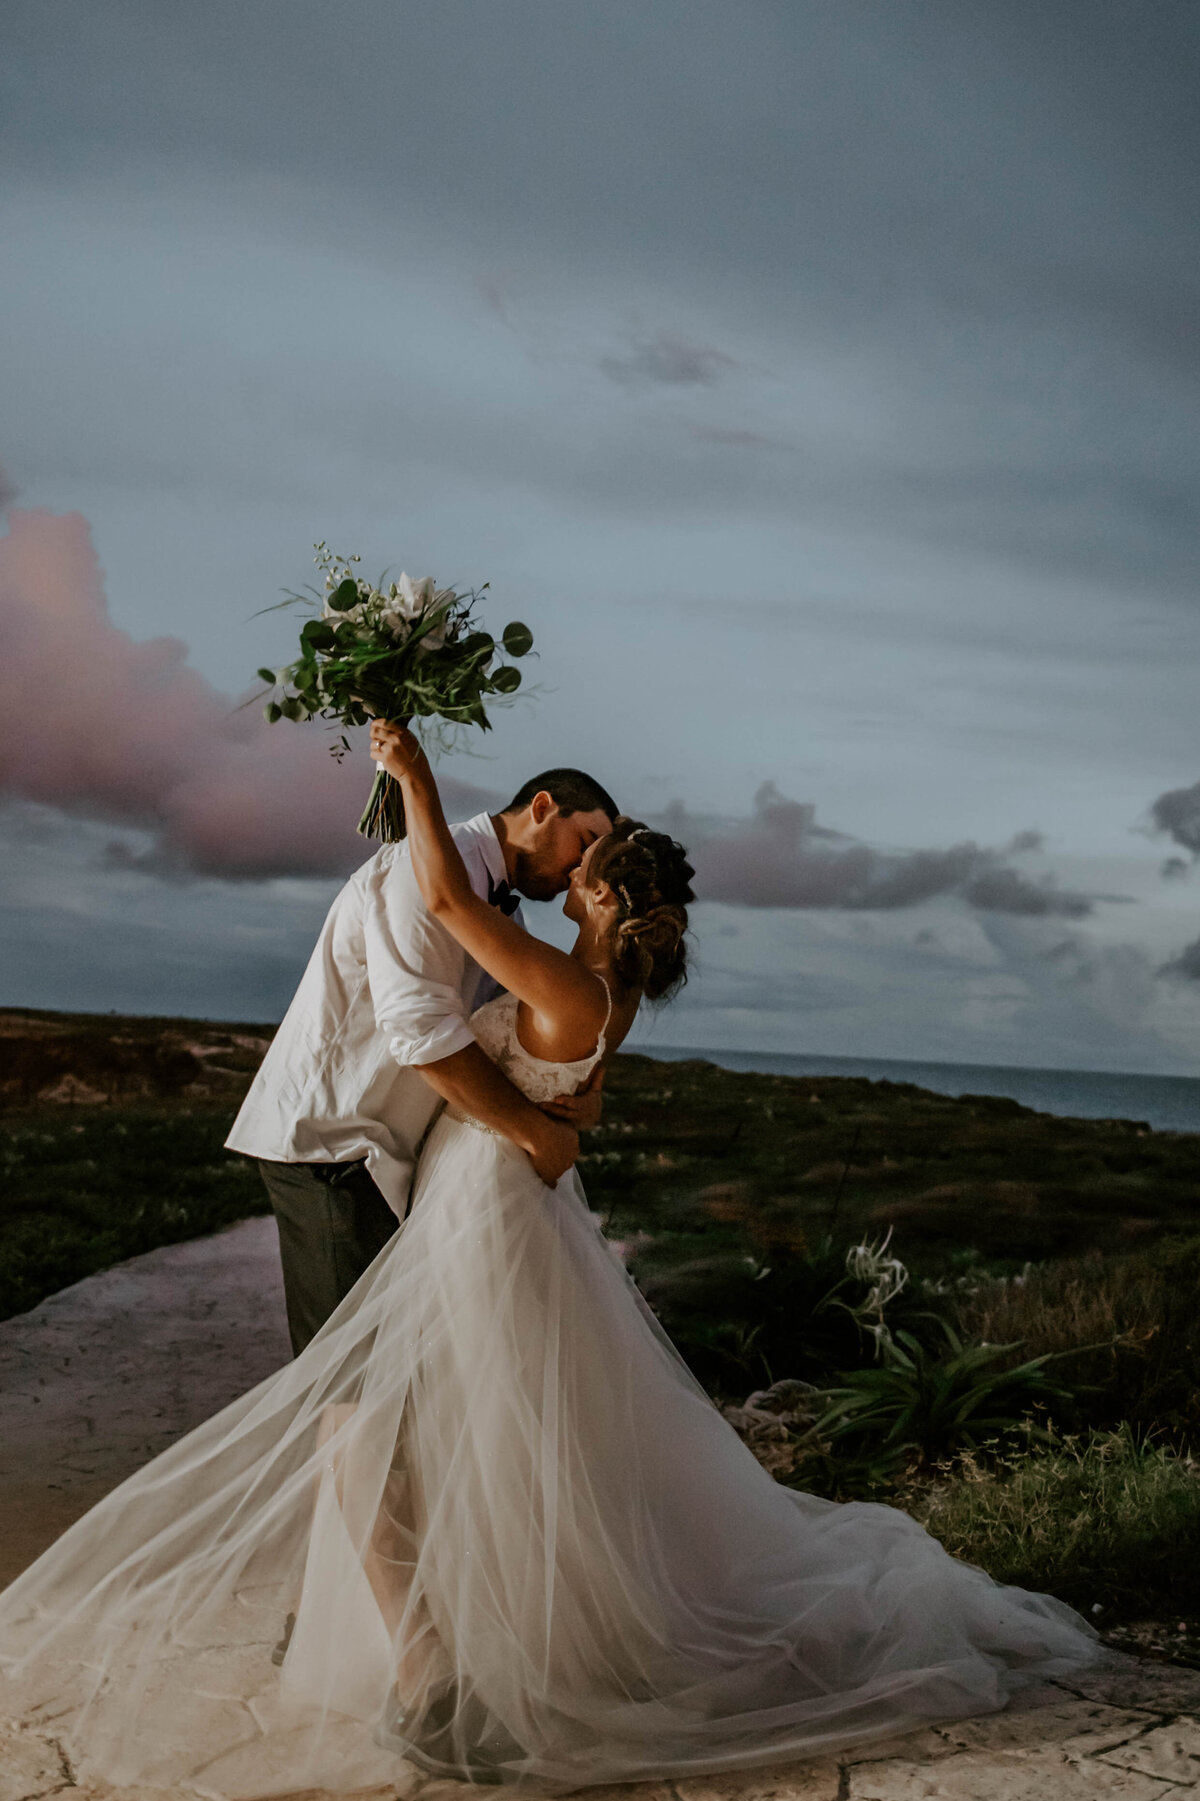 isla-mujeres-wedding-photographer-guthrie-zama-mexico-tulum-cancun-beach-destination-1543